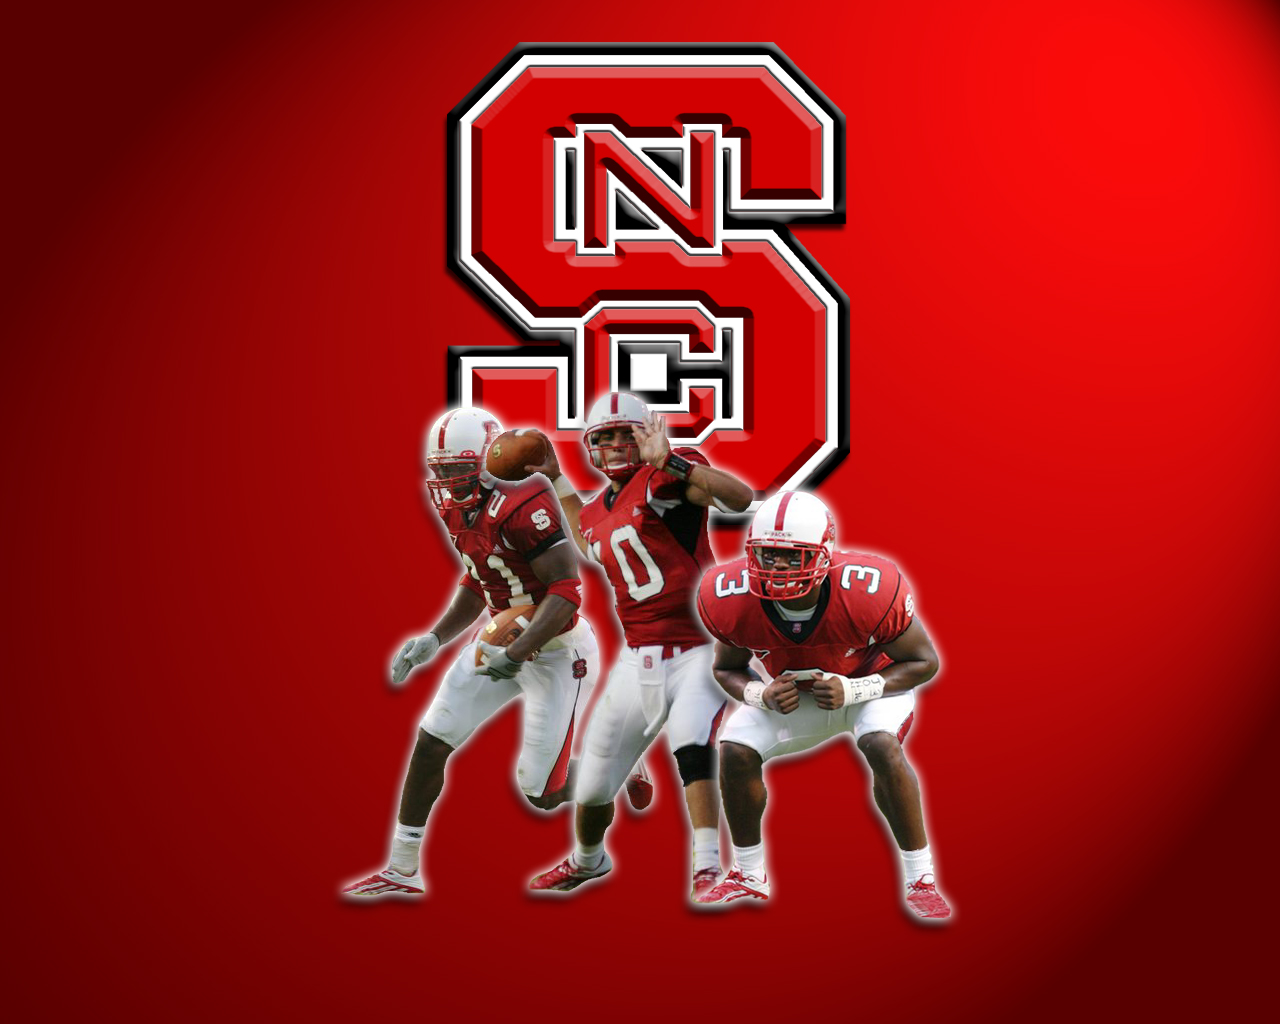 Pin Nc State Wallpaper Screensavers 1280x1024